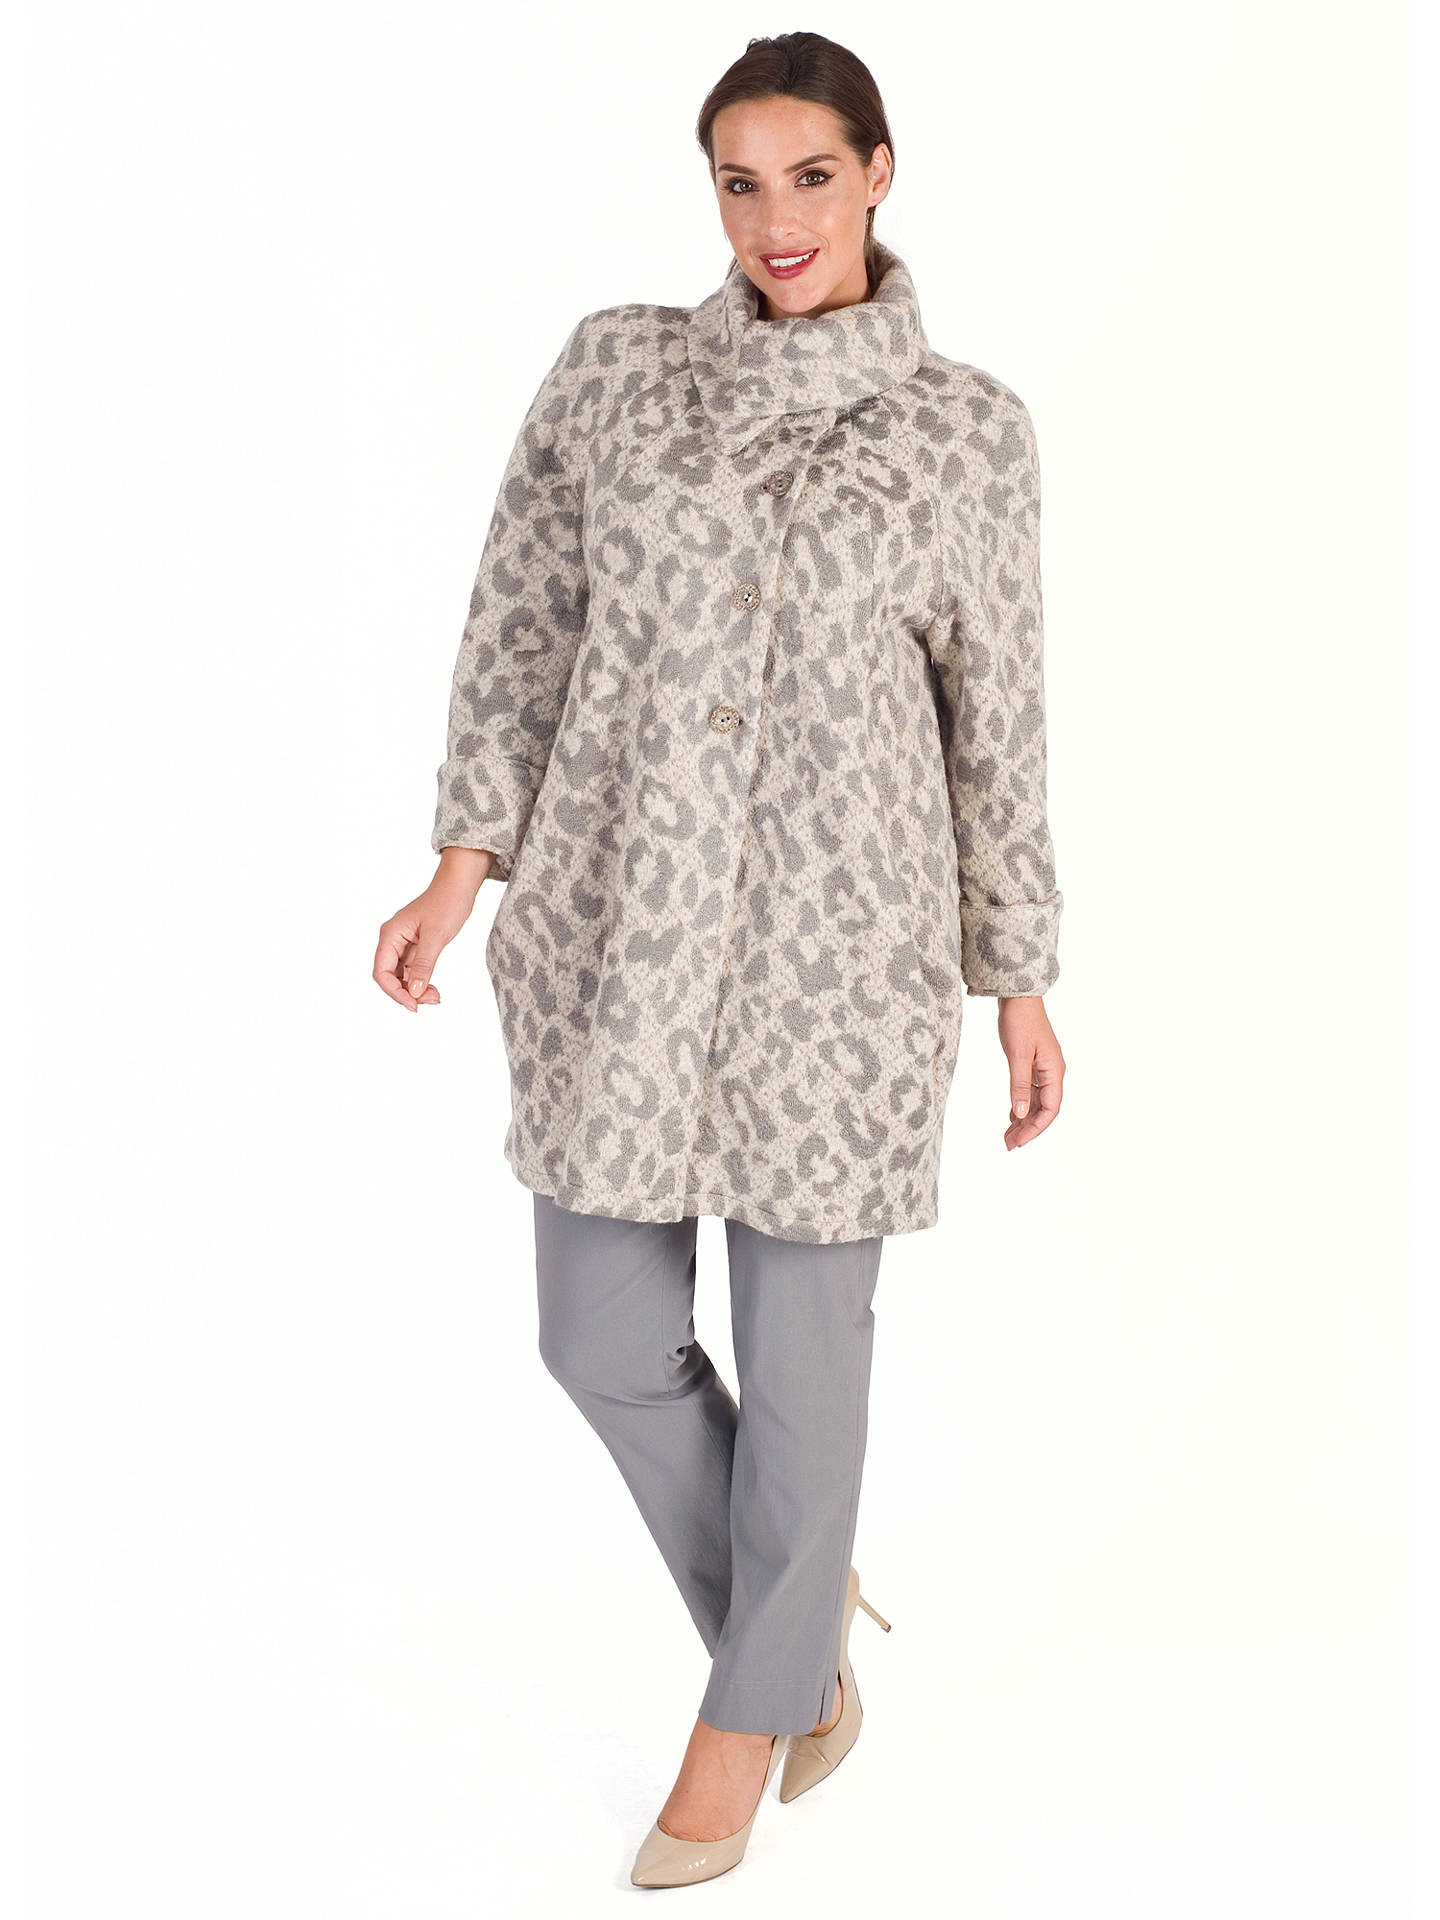 BuyChesca Animal Jacquard Coat, Beige/Grey, 24-26 Online at johnlewis.com